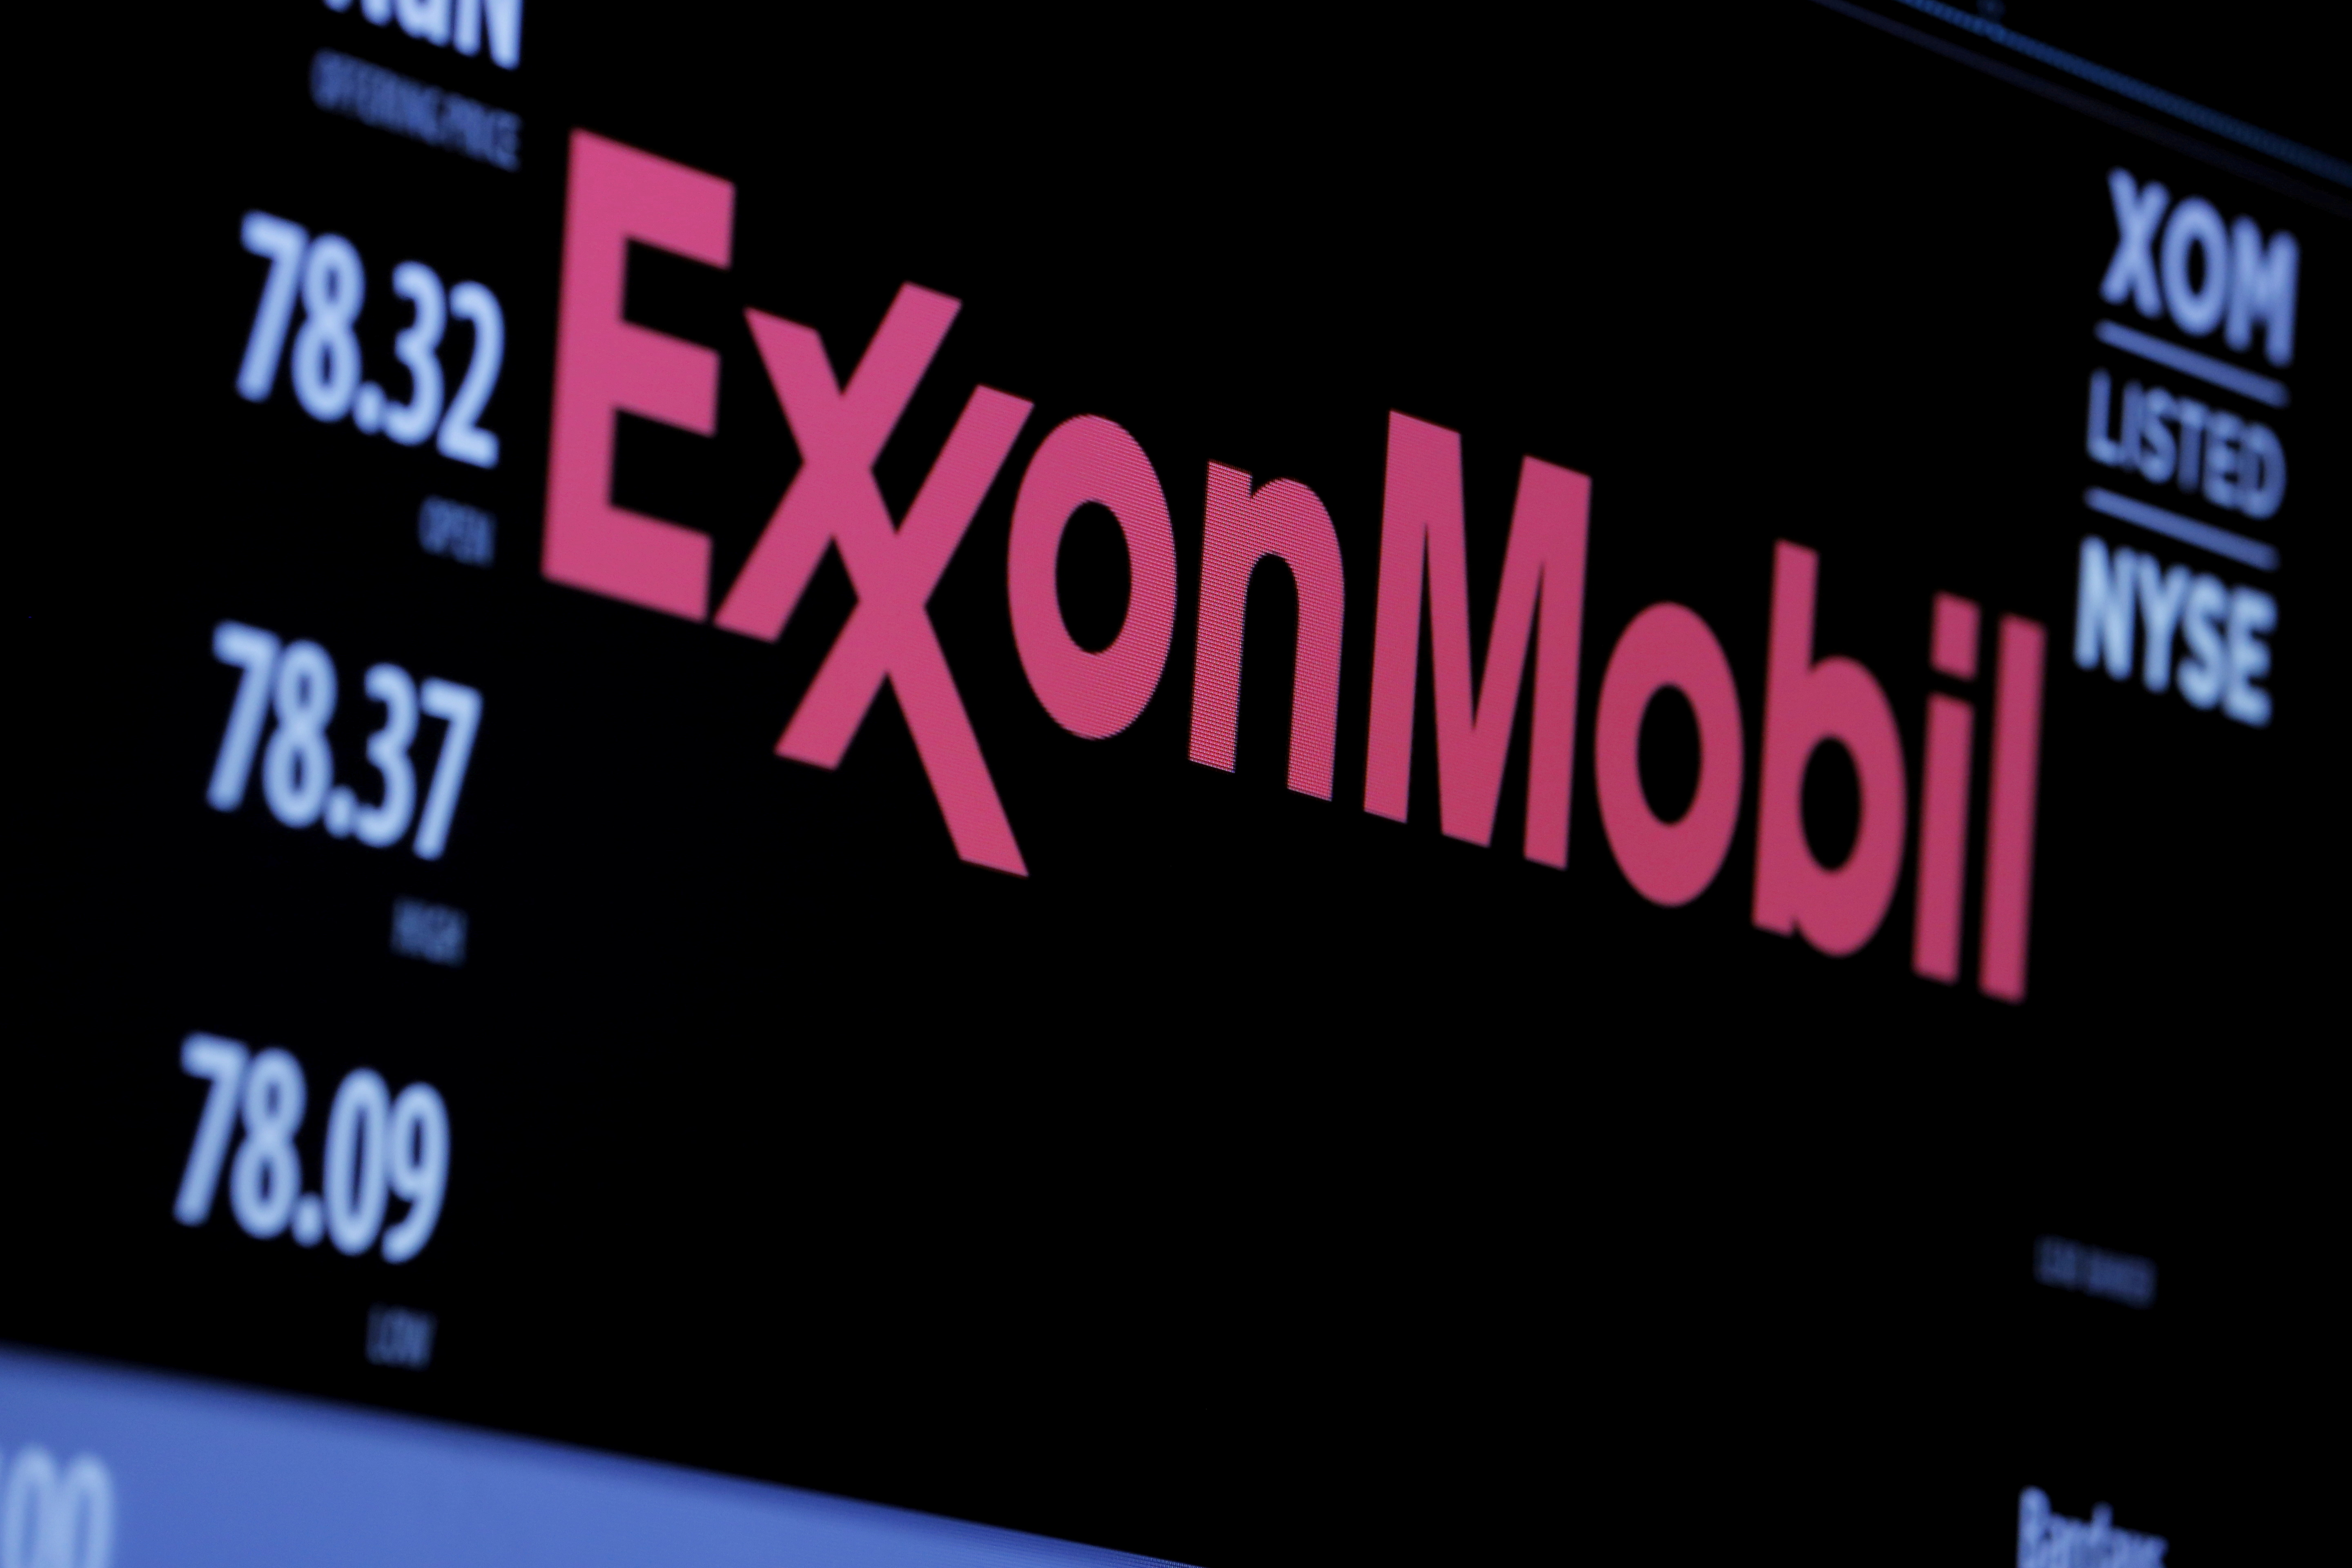 The logo of Exxon Mobil Corp is shown on a monitor above the floor of the New York Stock Exchange in New York, December 30, 2015.